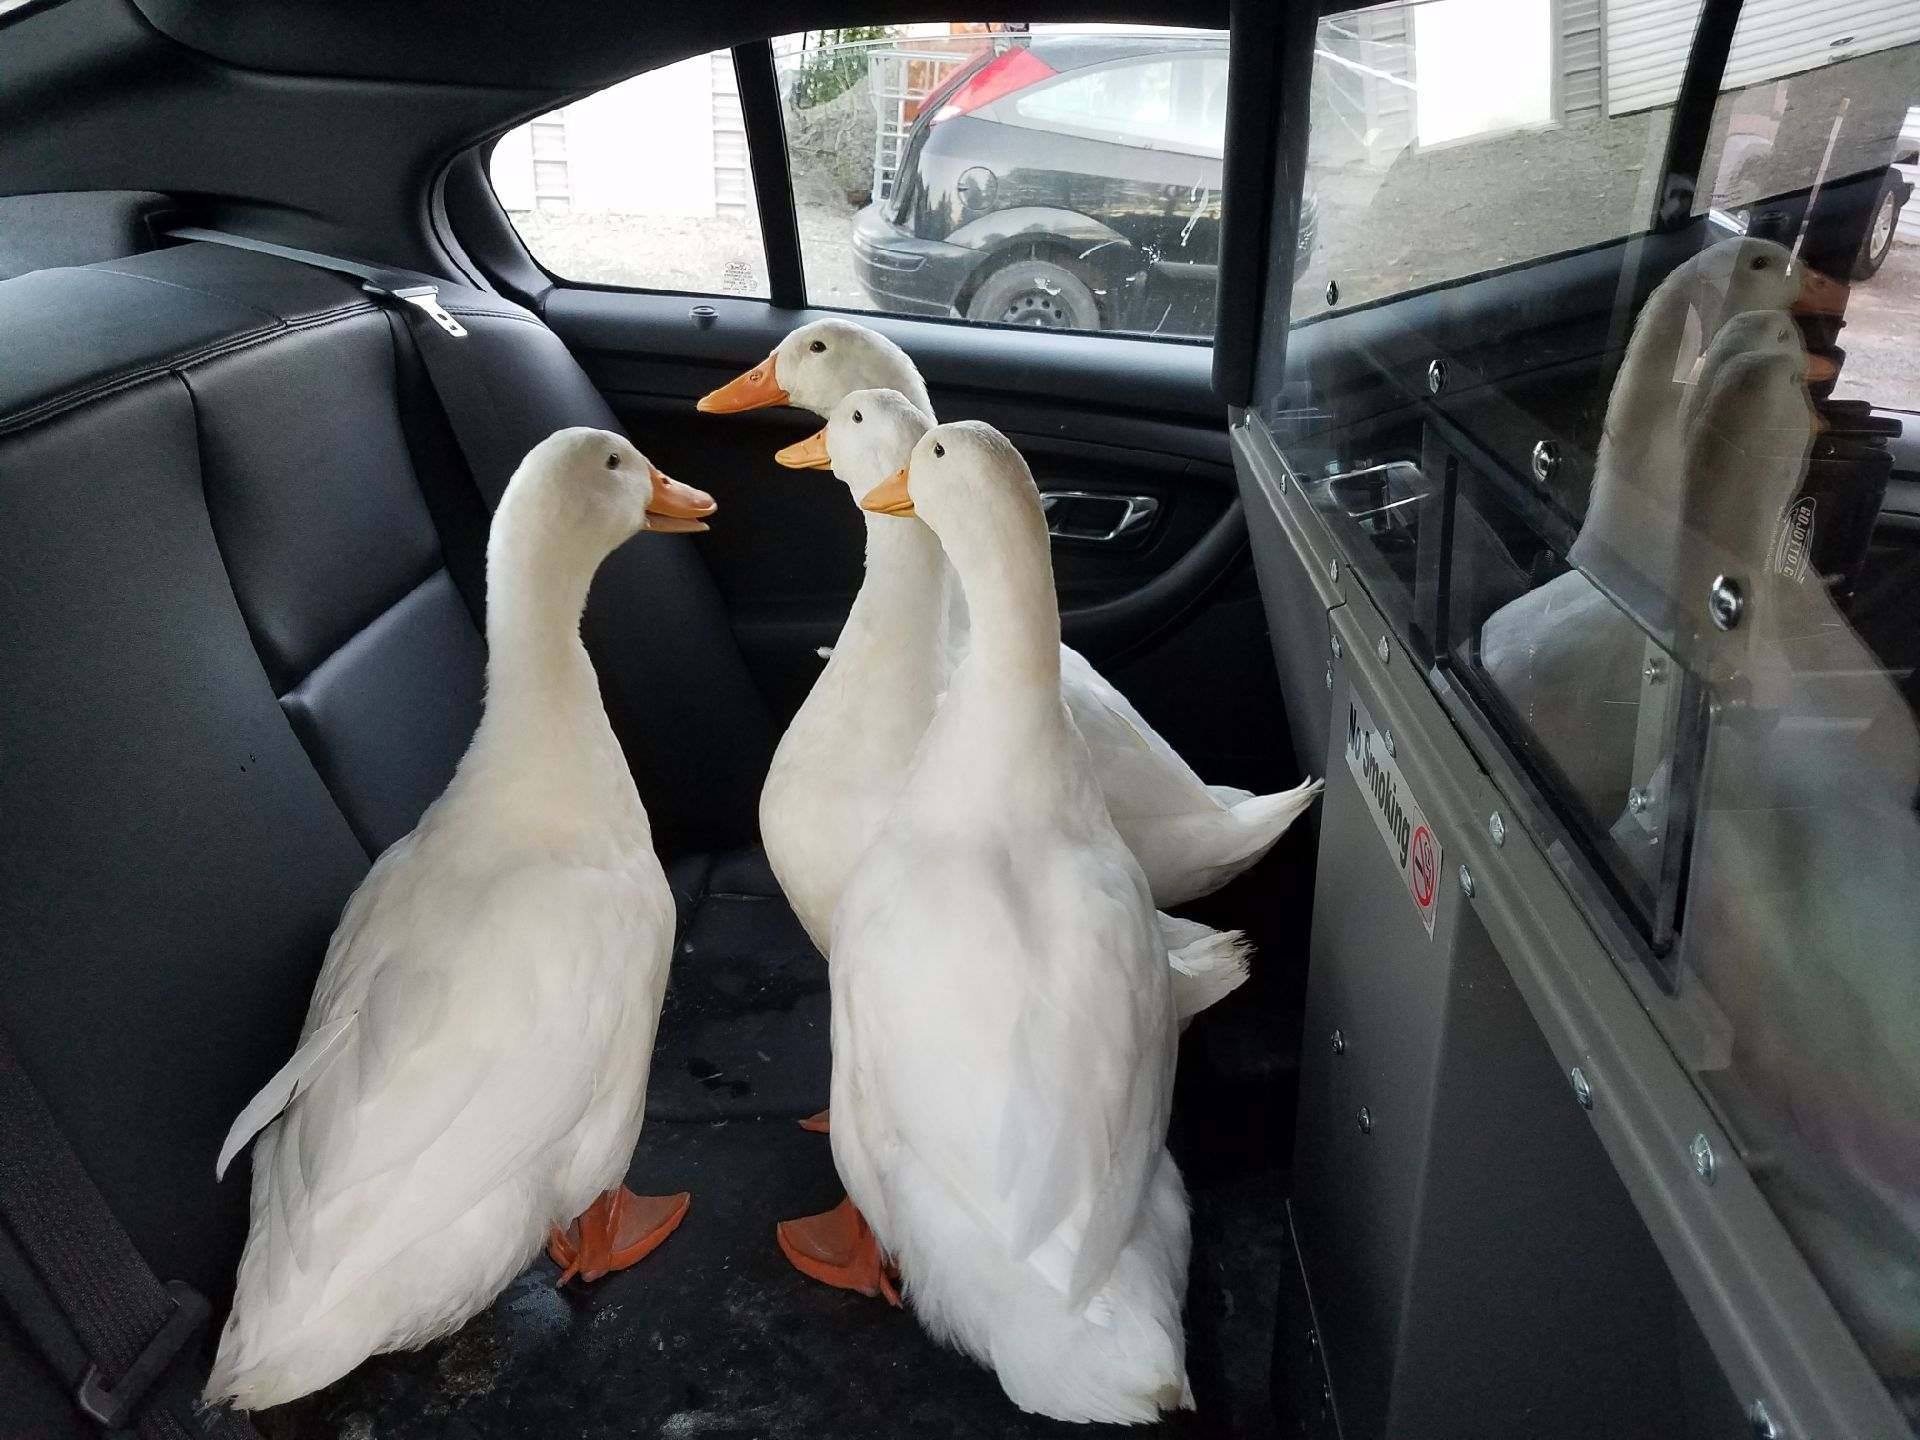 Ducks Arrested